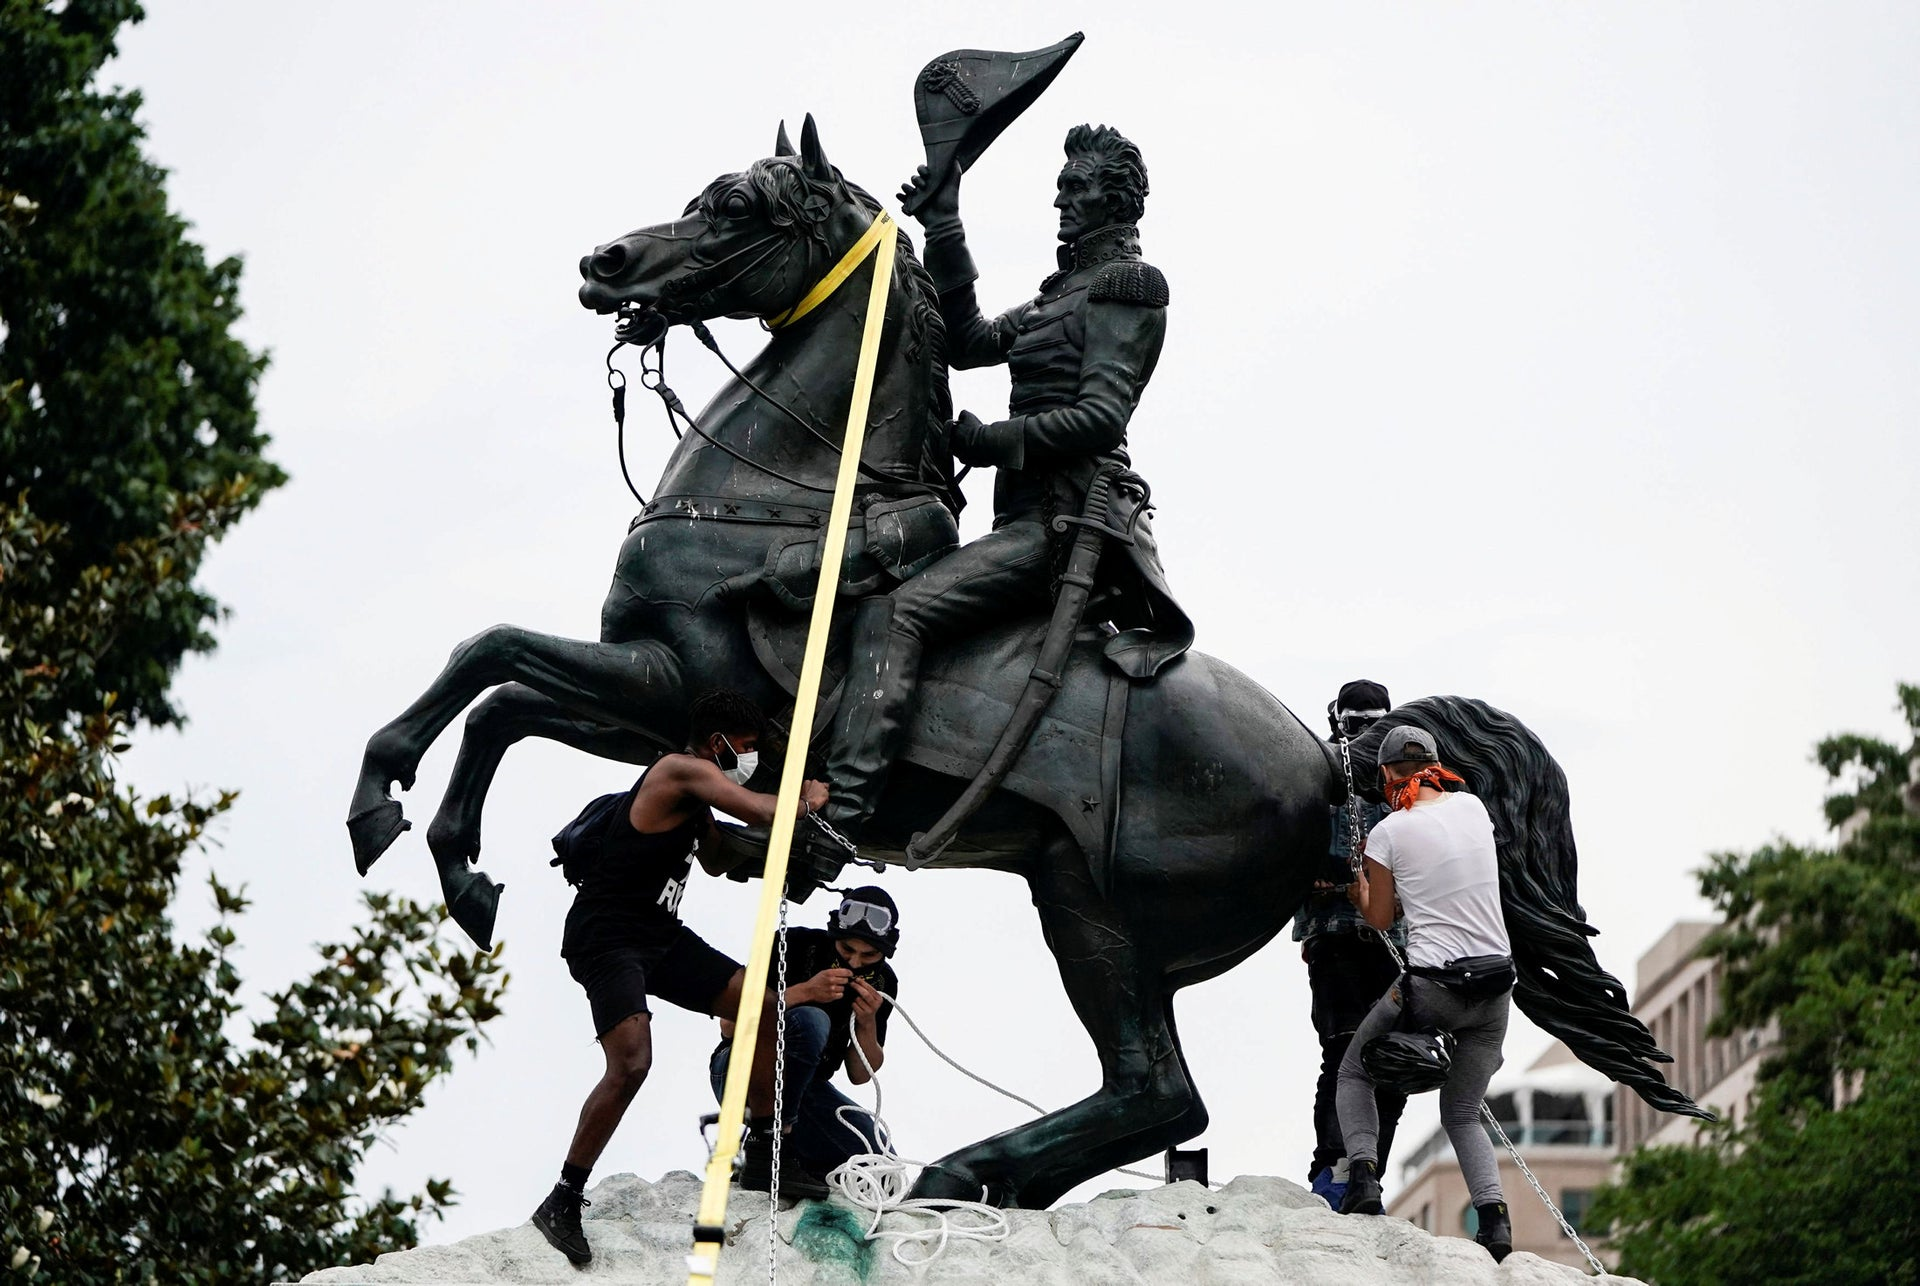 Protestors try to pull down the statue of U.S. President Andrew Jackson at Lafayette Park in front of the White House during racial inequality protests in Washington, D.C., June 22, 2020.